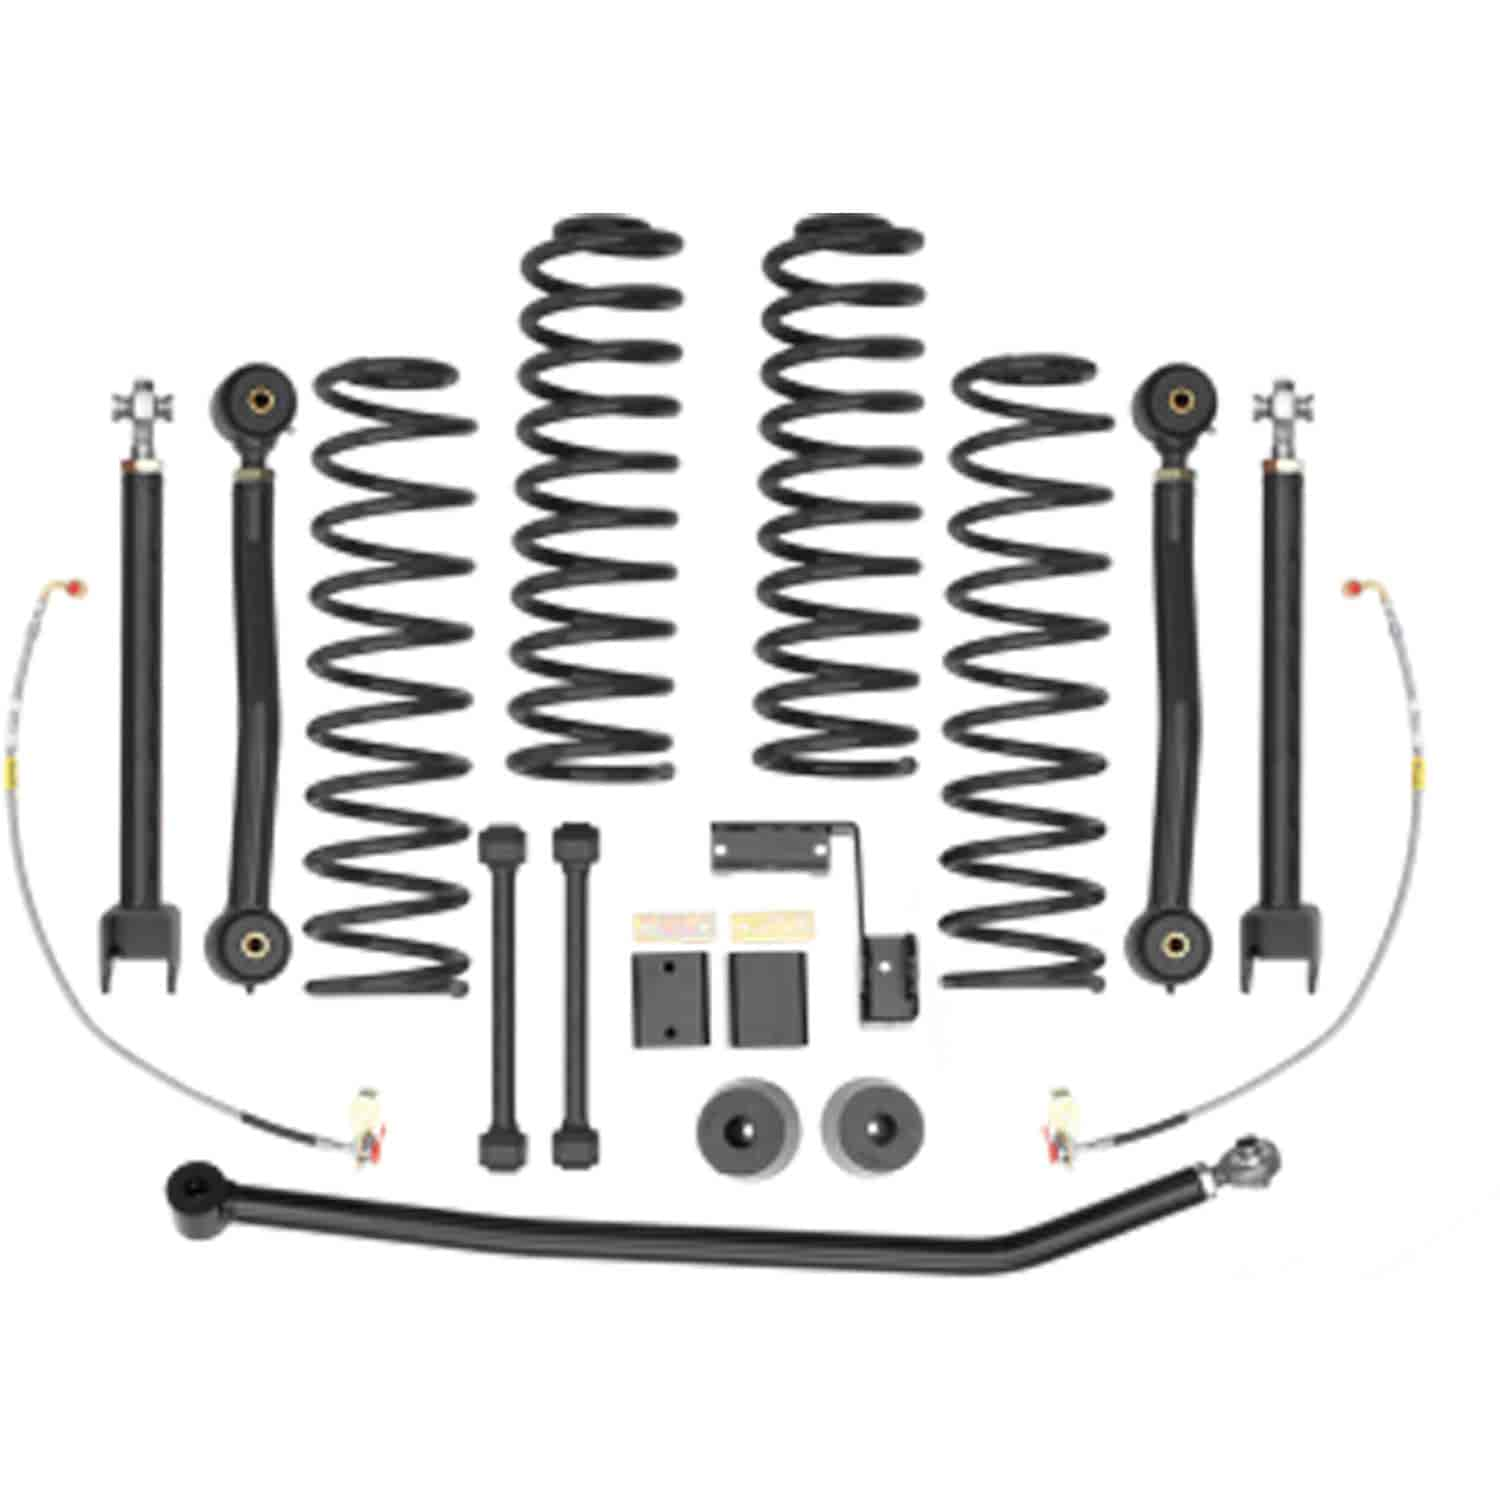 Rancho Rs B Trail Suspension System Fits Jeep